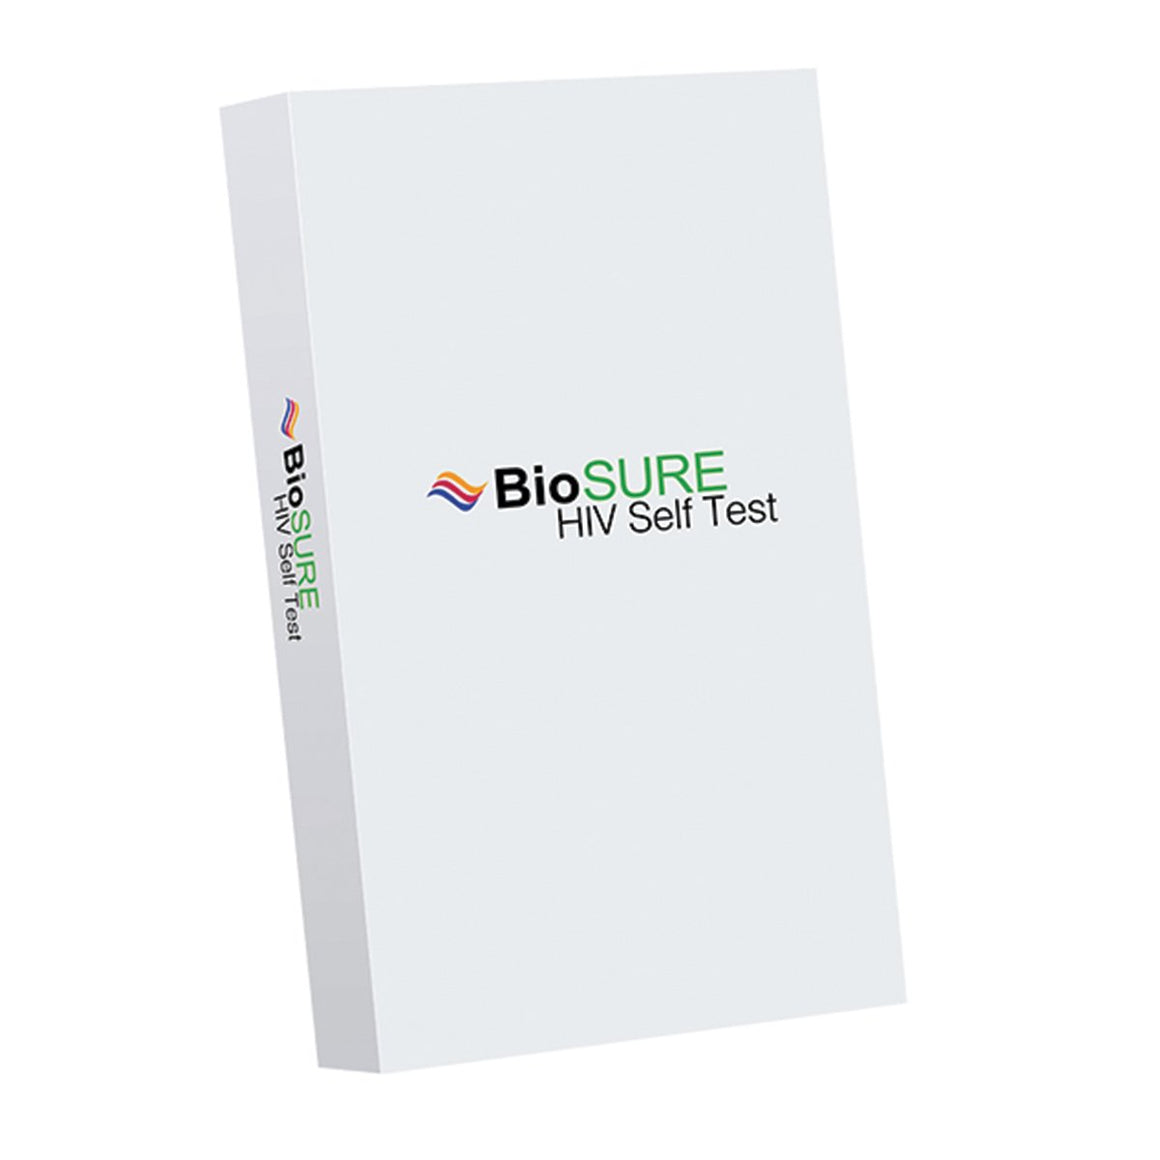 BioSURE HIV Self Test 手指針刺取血檢測包 - Lovenjoy Club